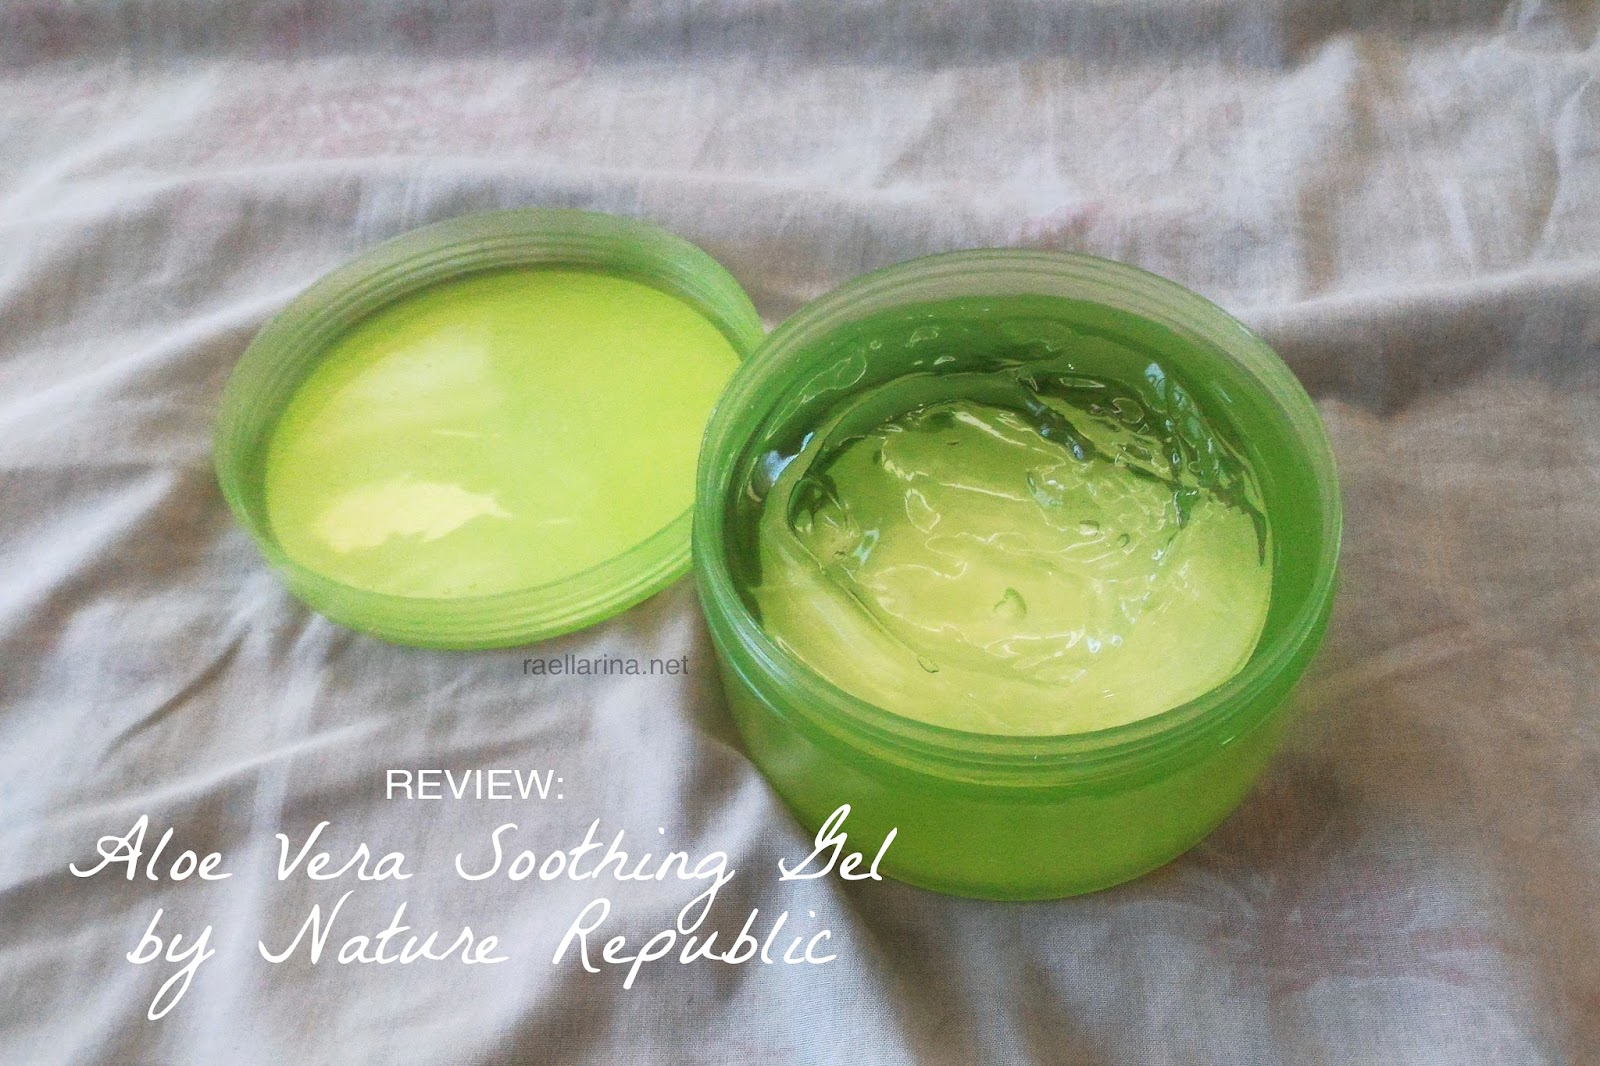 REVIEW: Aloe Vera Soothing Gel by Nature Republic | Raellarina ...